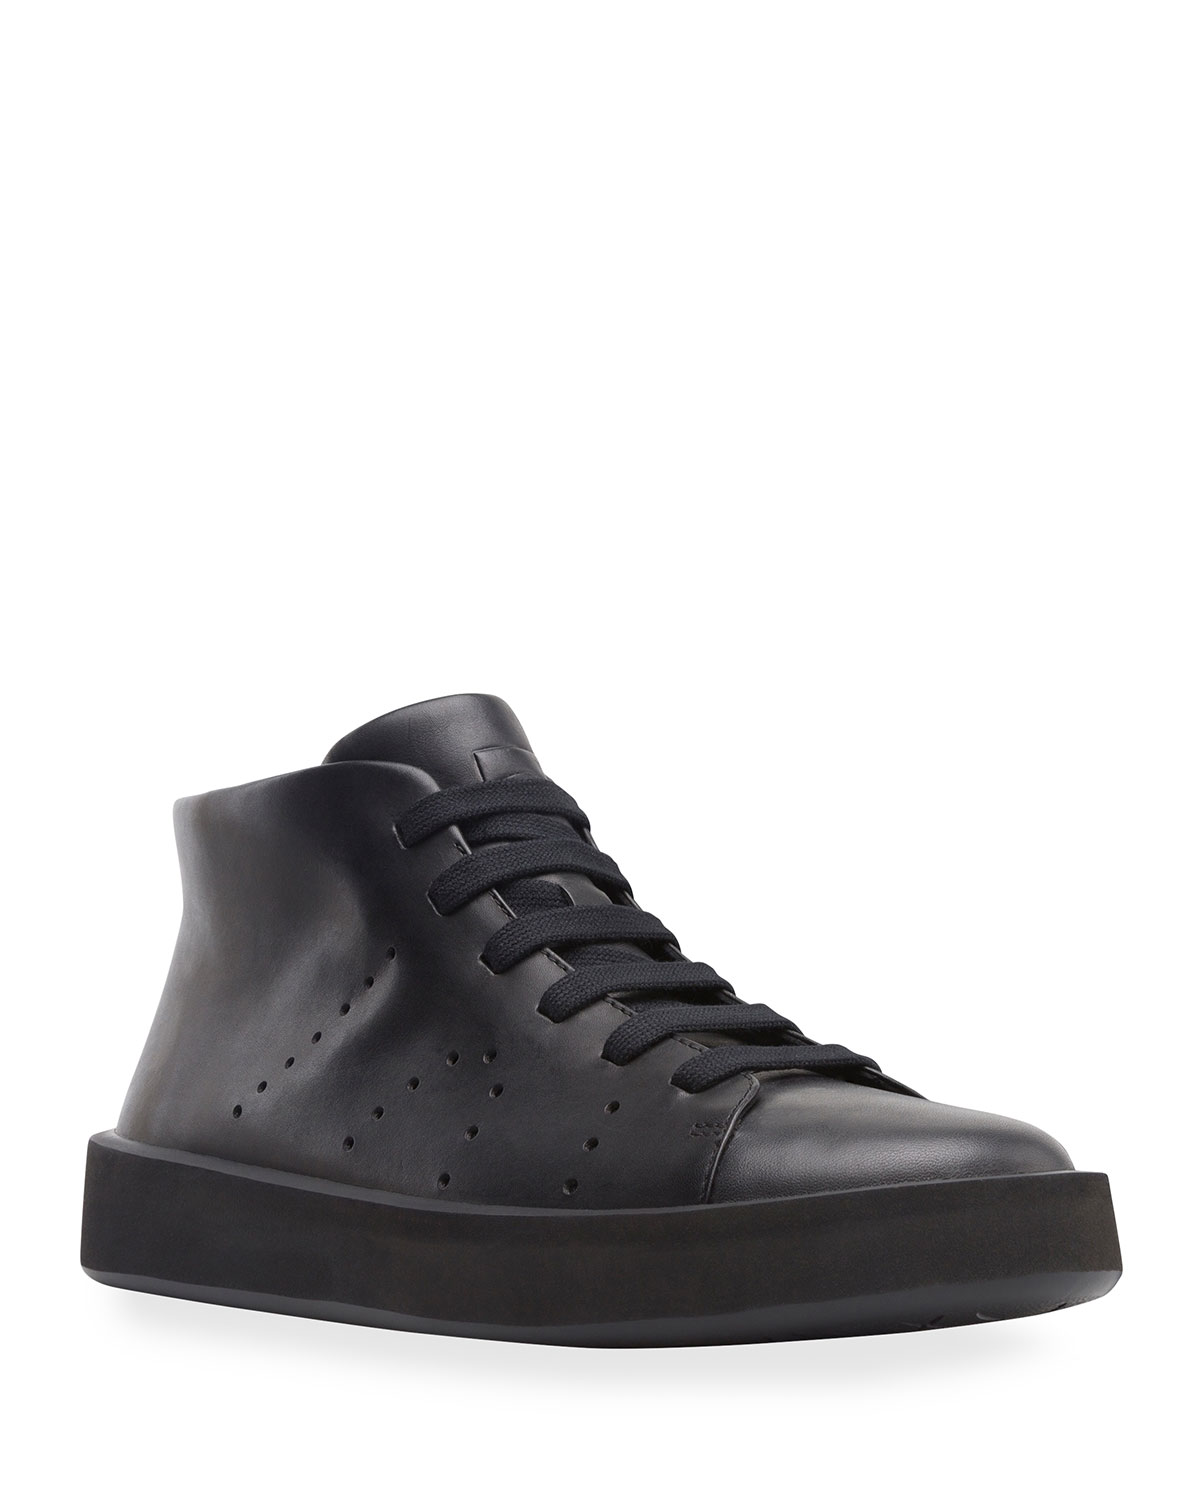 Camper MEN'S COURB LEATHER BOOT SNEAKERS